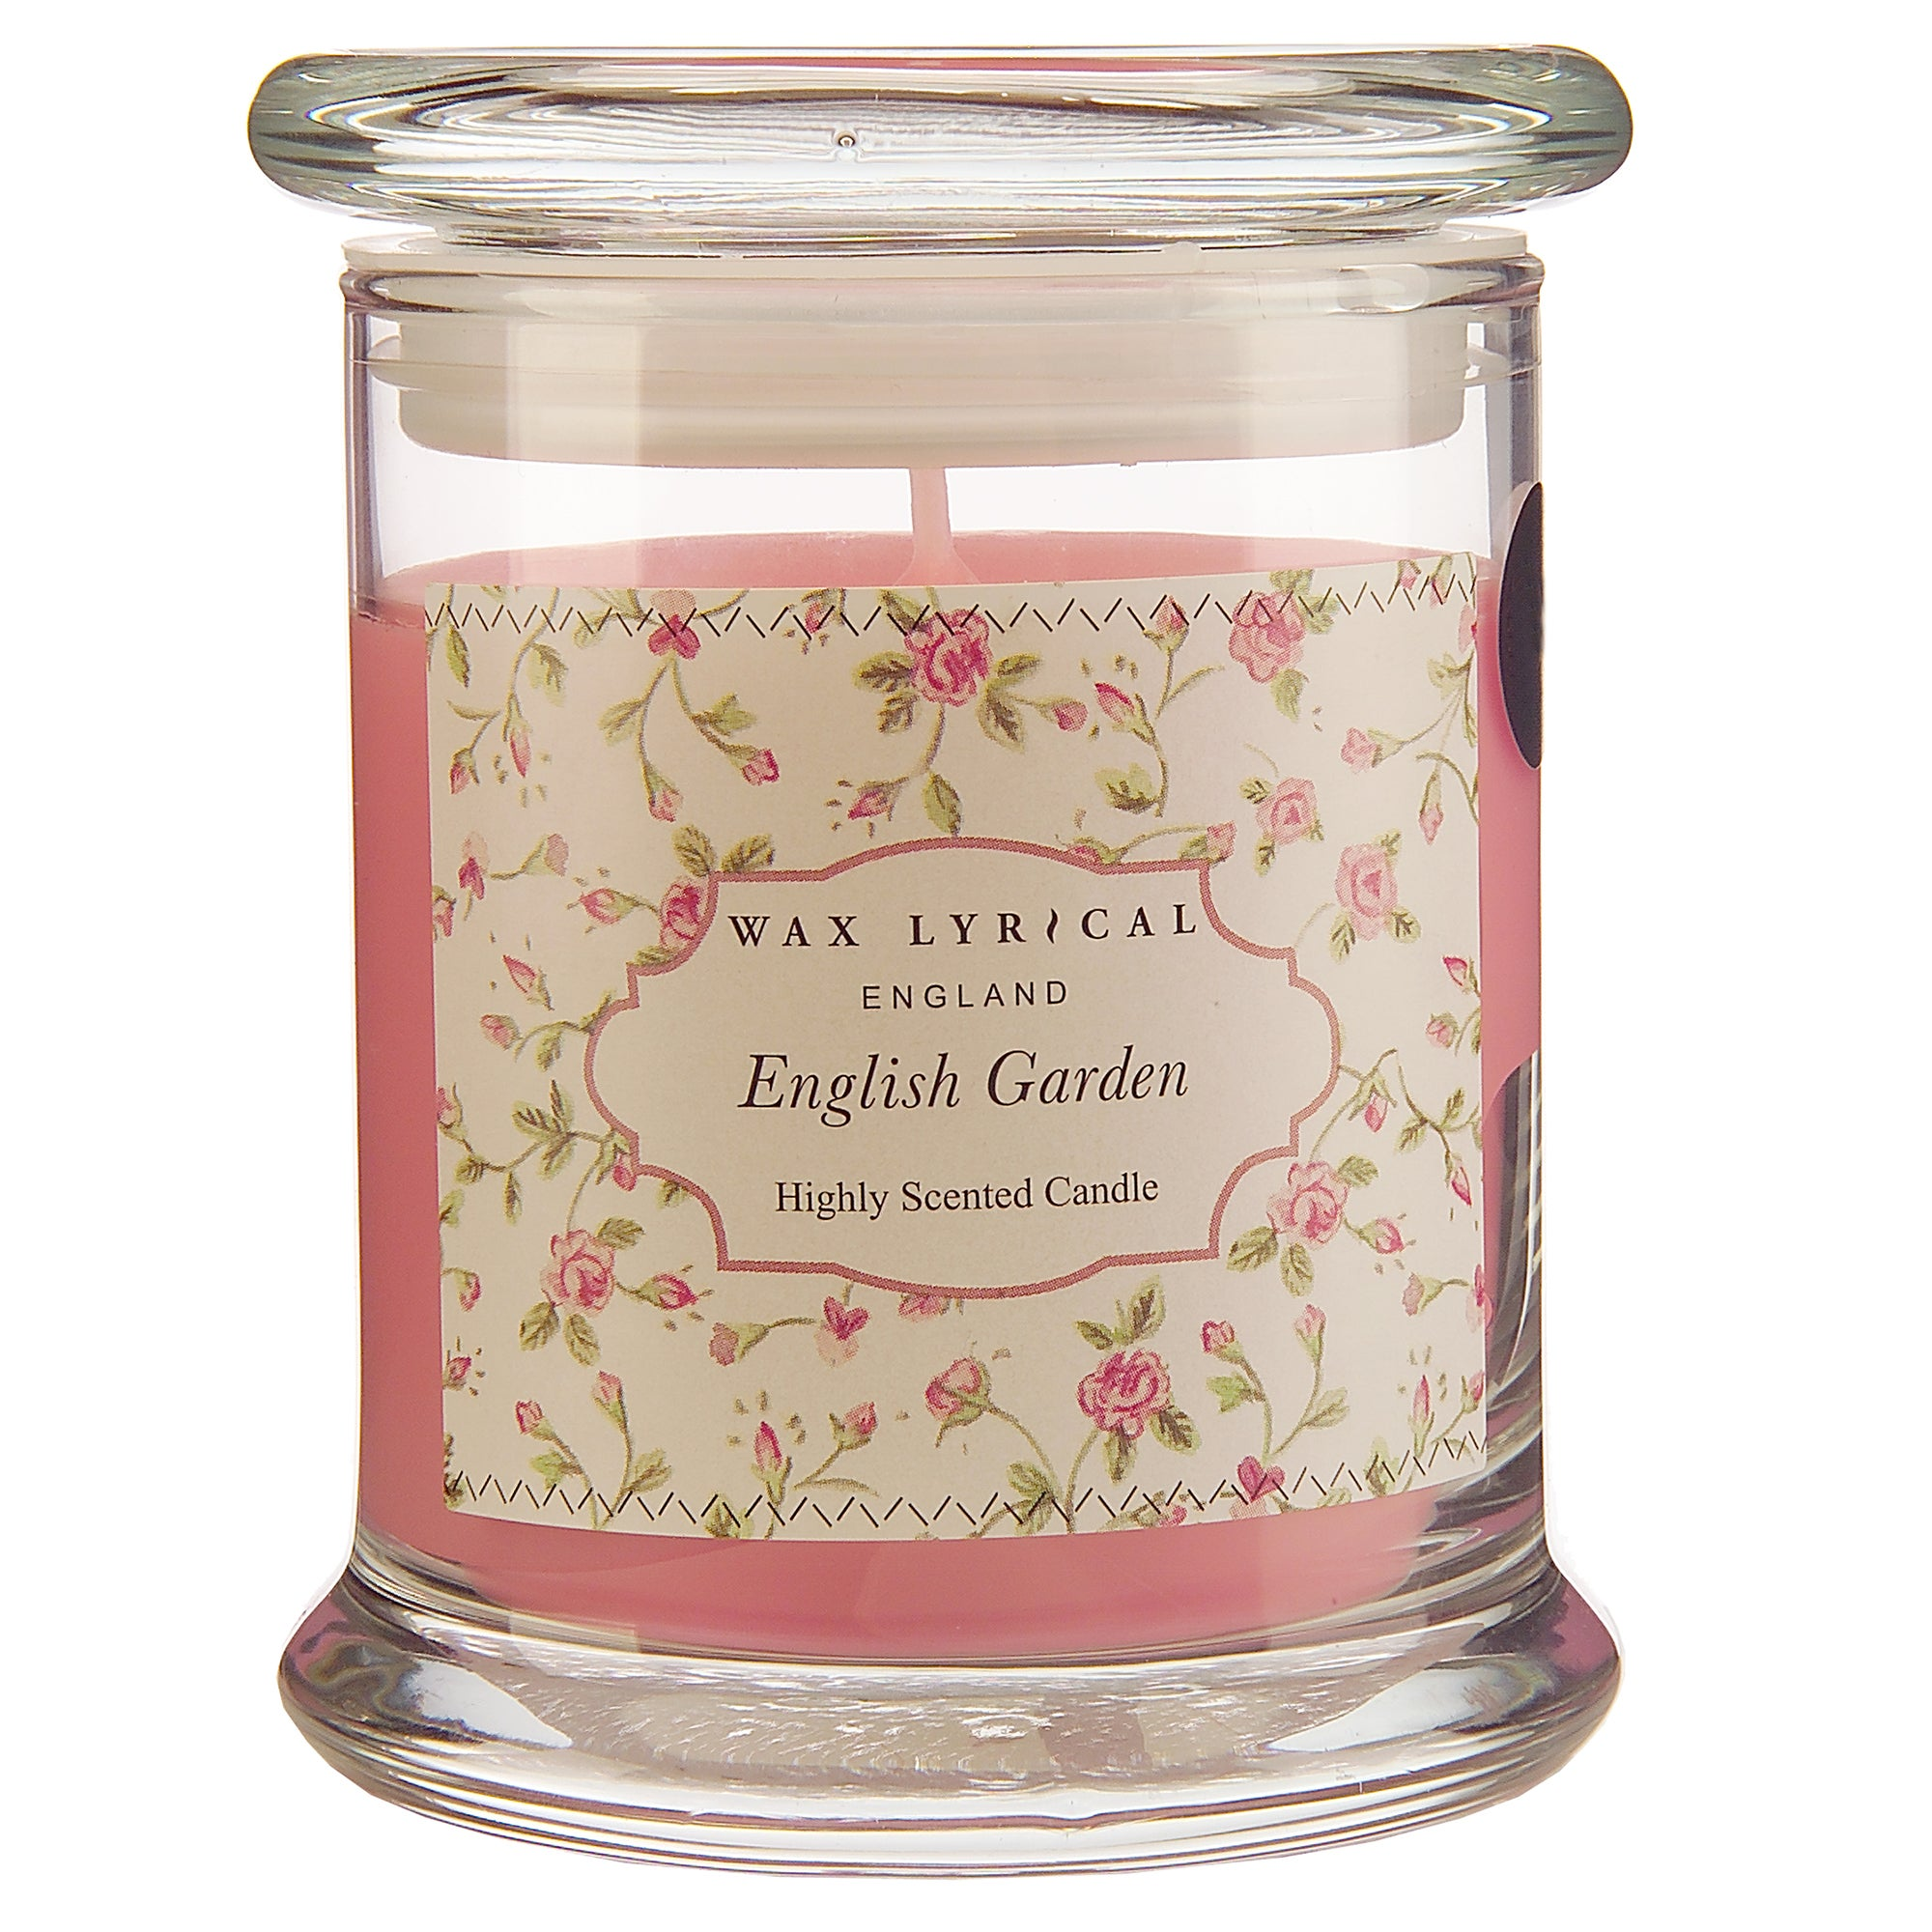 Wax Lyrical English Garden Wax Filled Jar Large Candle